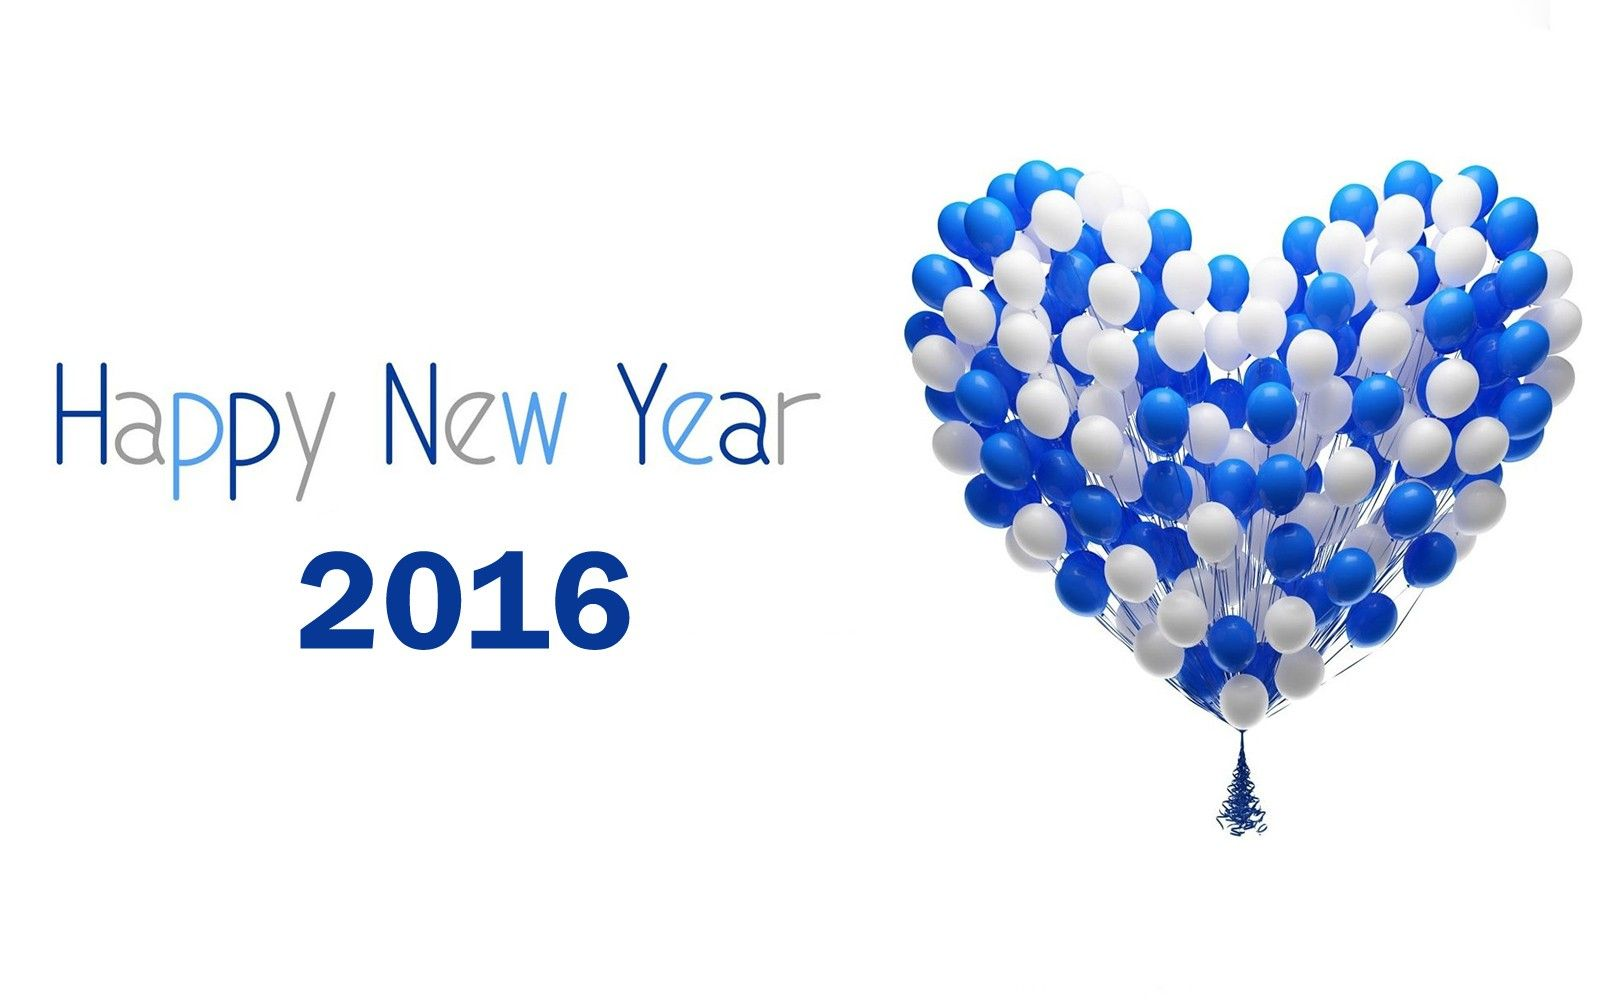 Wallpaper download new year 2016 - Explore Special Wallpaper And More Happy New Year 2016